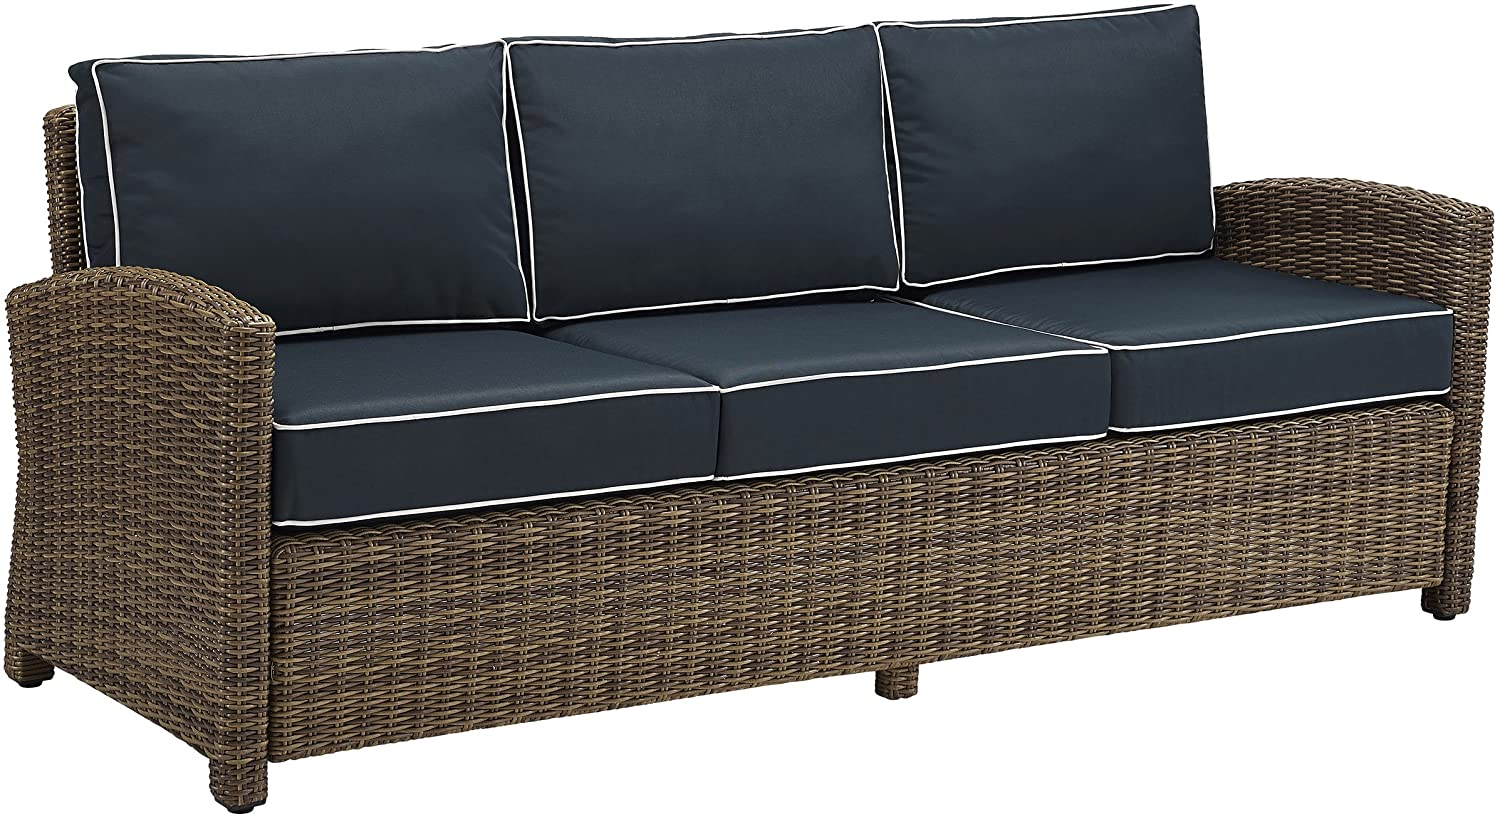 Crosley Furniture Bradenton Outdoor Wicker Patio Sofa with Cushions - Navy